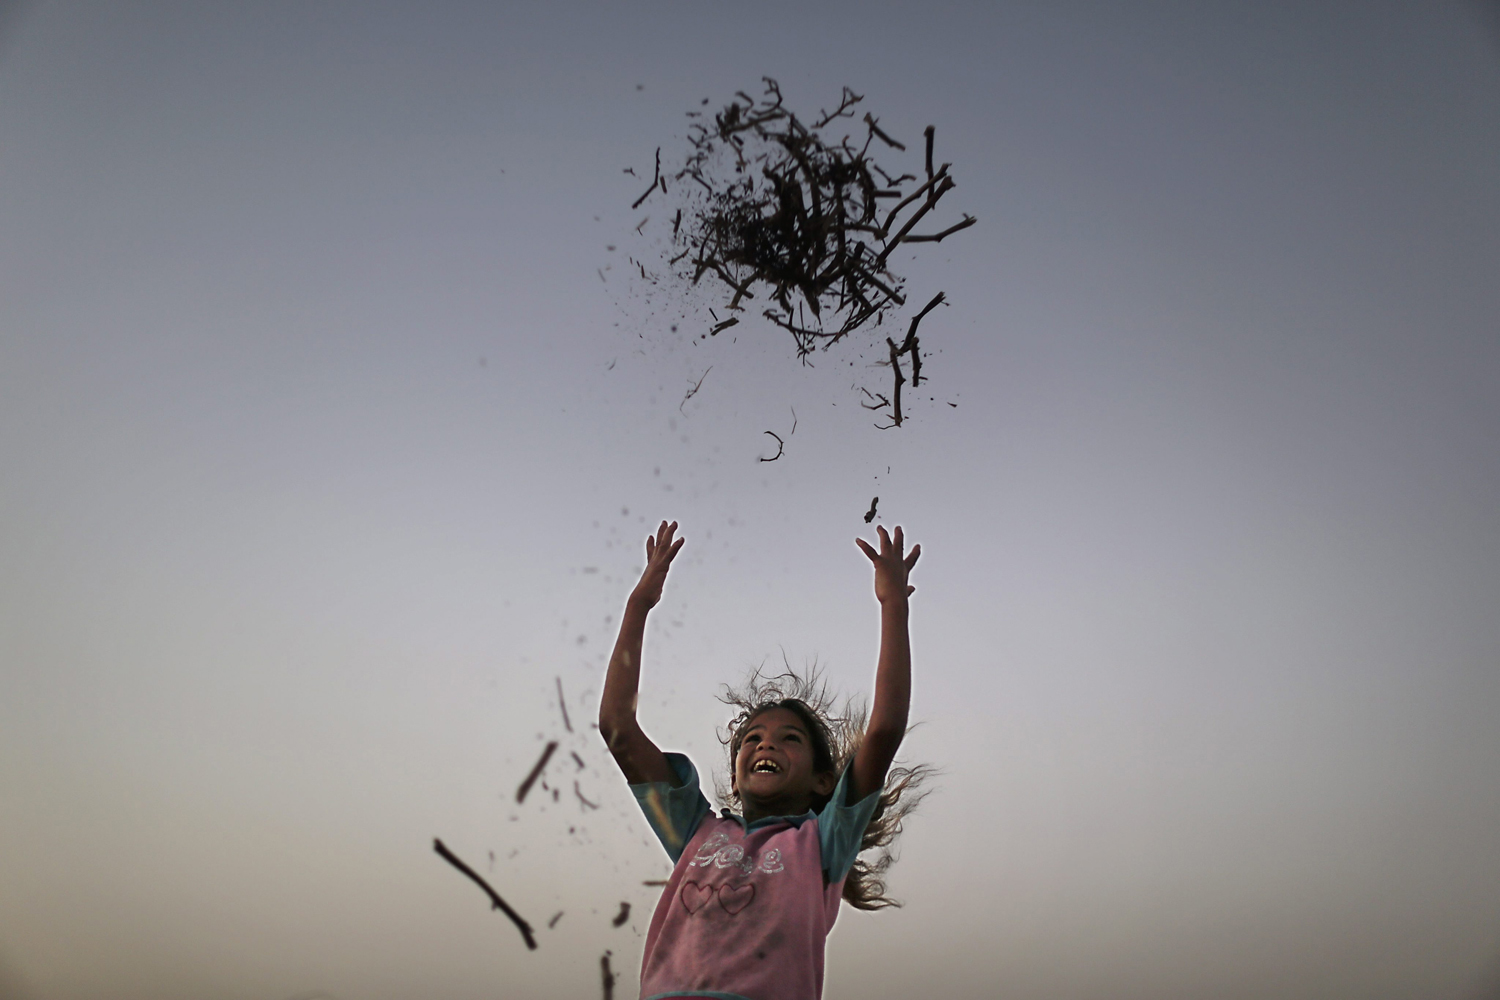 Aug. 27, 2013. A Palestinian girl play outside her family's tent in a poverty-stricken quarter of the town of Younis, in the southern Gaza Strip.